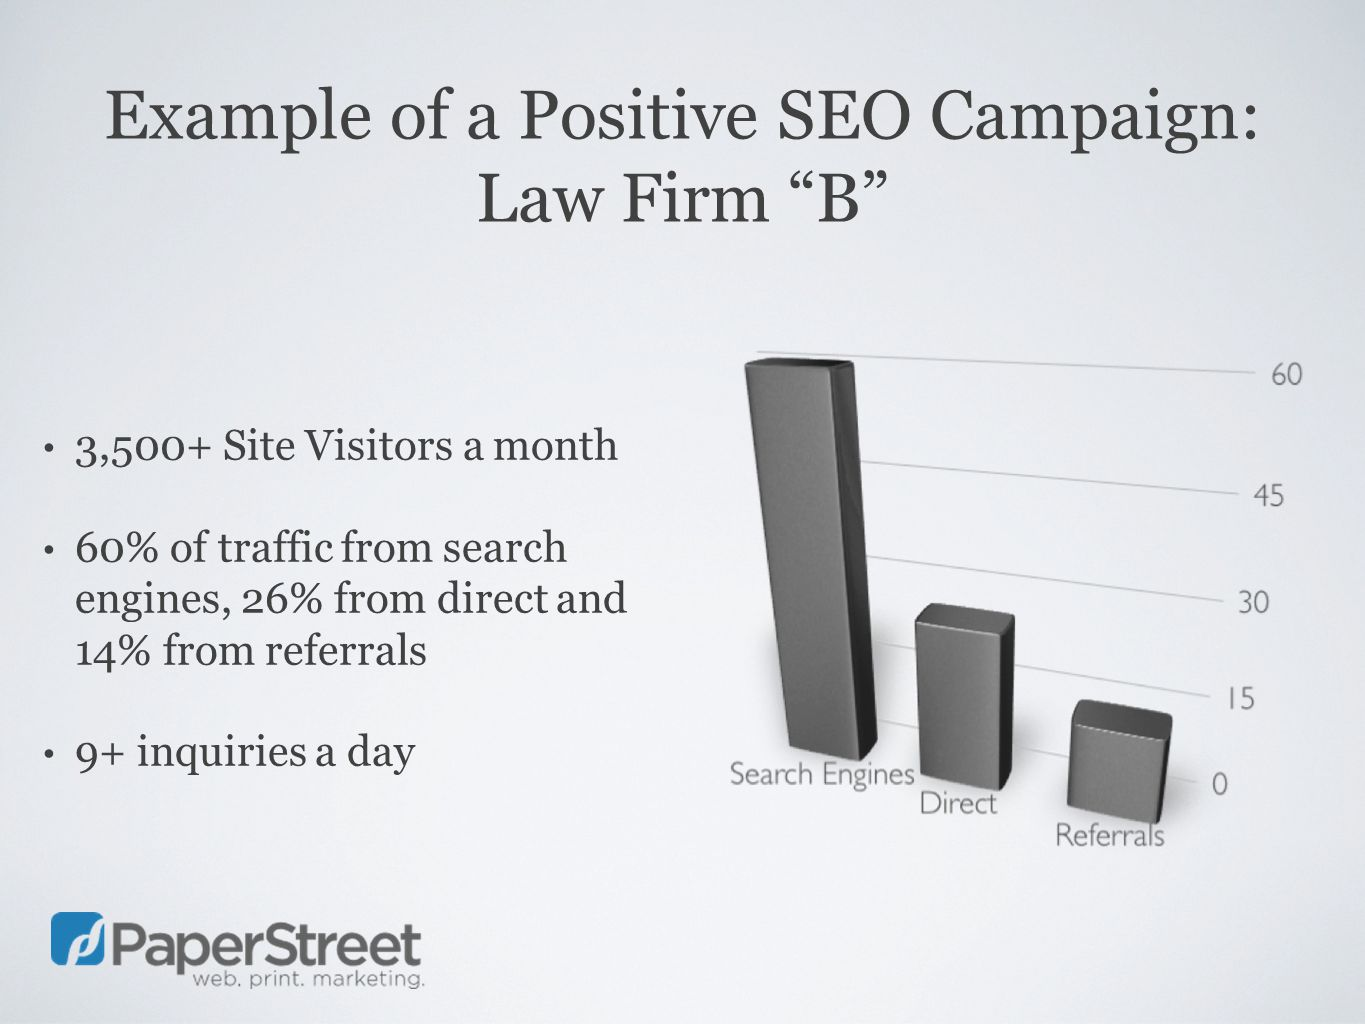 Example of a Positive SEO Campaign: Law Firm B 3,500+ Site Visitors a month 60% of traffic from search engines, 26% from direct and 14% from referrals 9+ inquiries a day